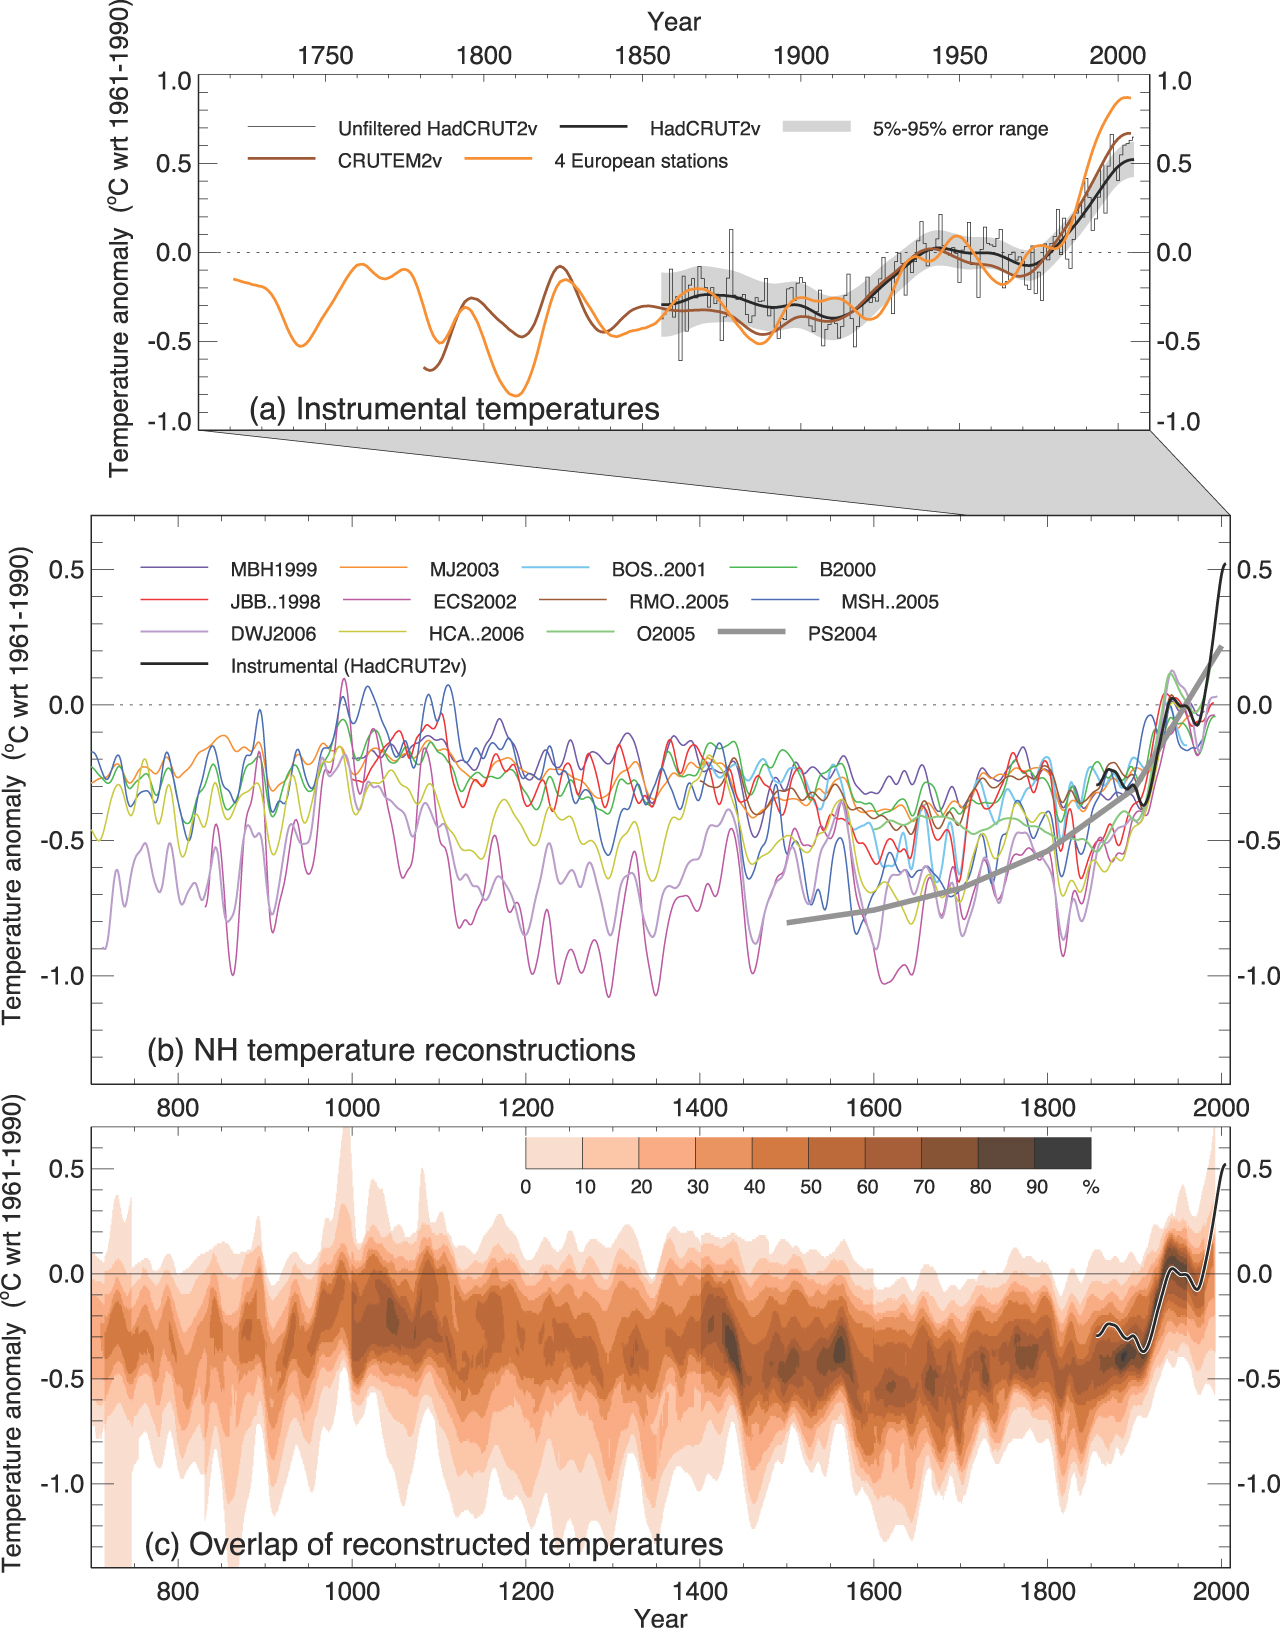 Dumb Scientist Abrupt Climate Change Wiring Diagram 2007 Viking Epic Multiple Independent Temperature Reconstructions Over The Past 1000 Years